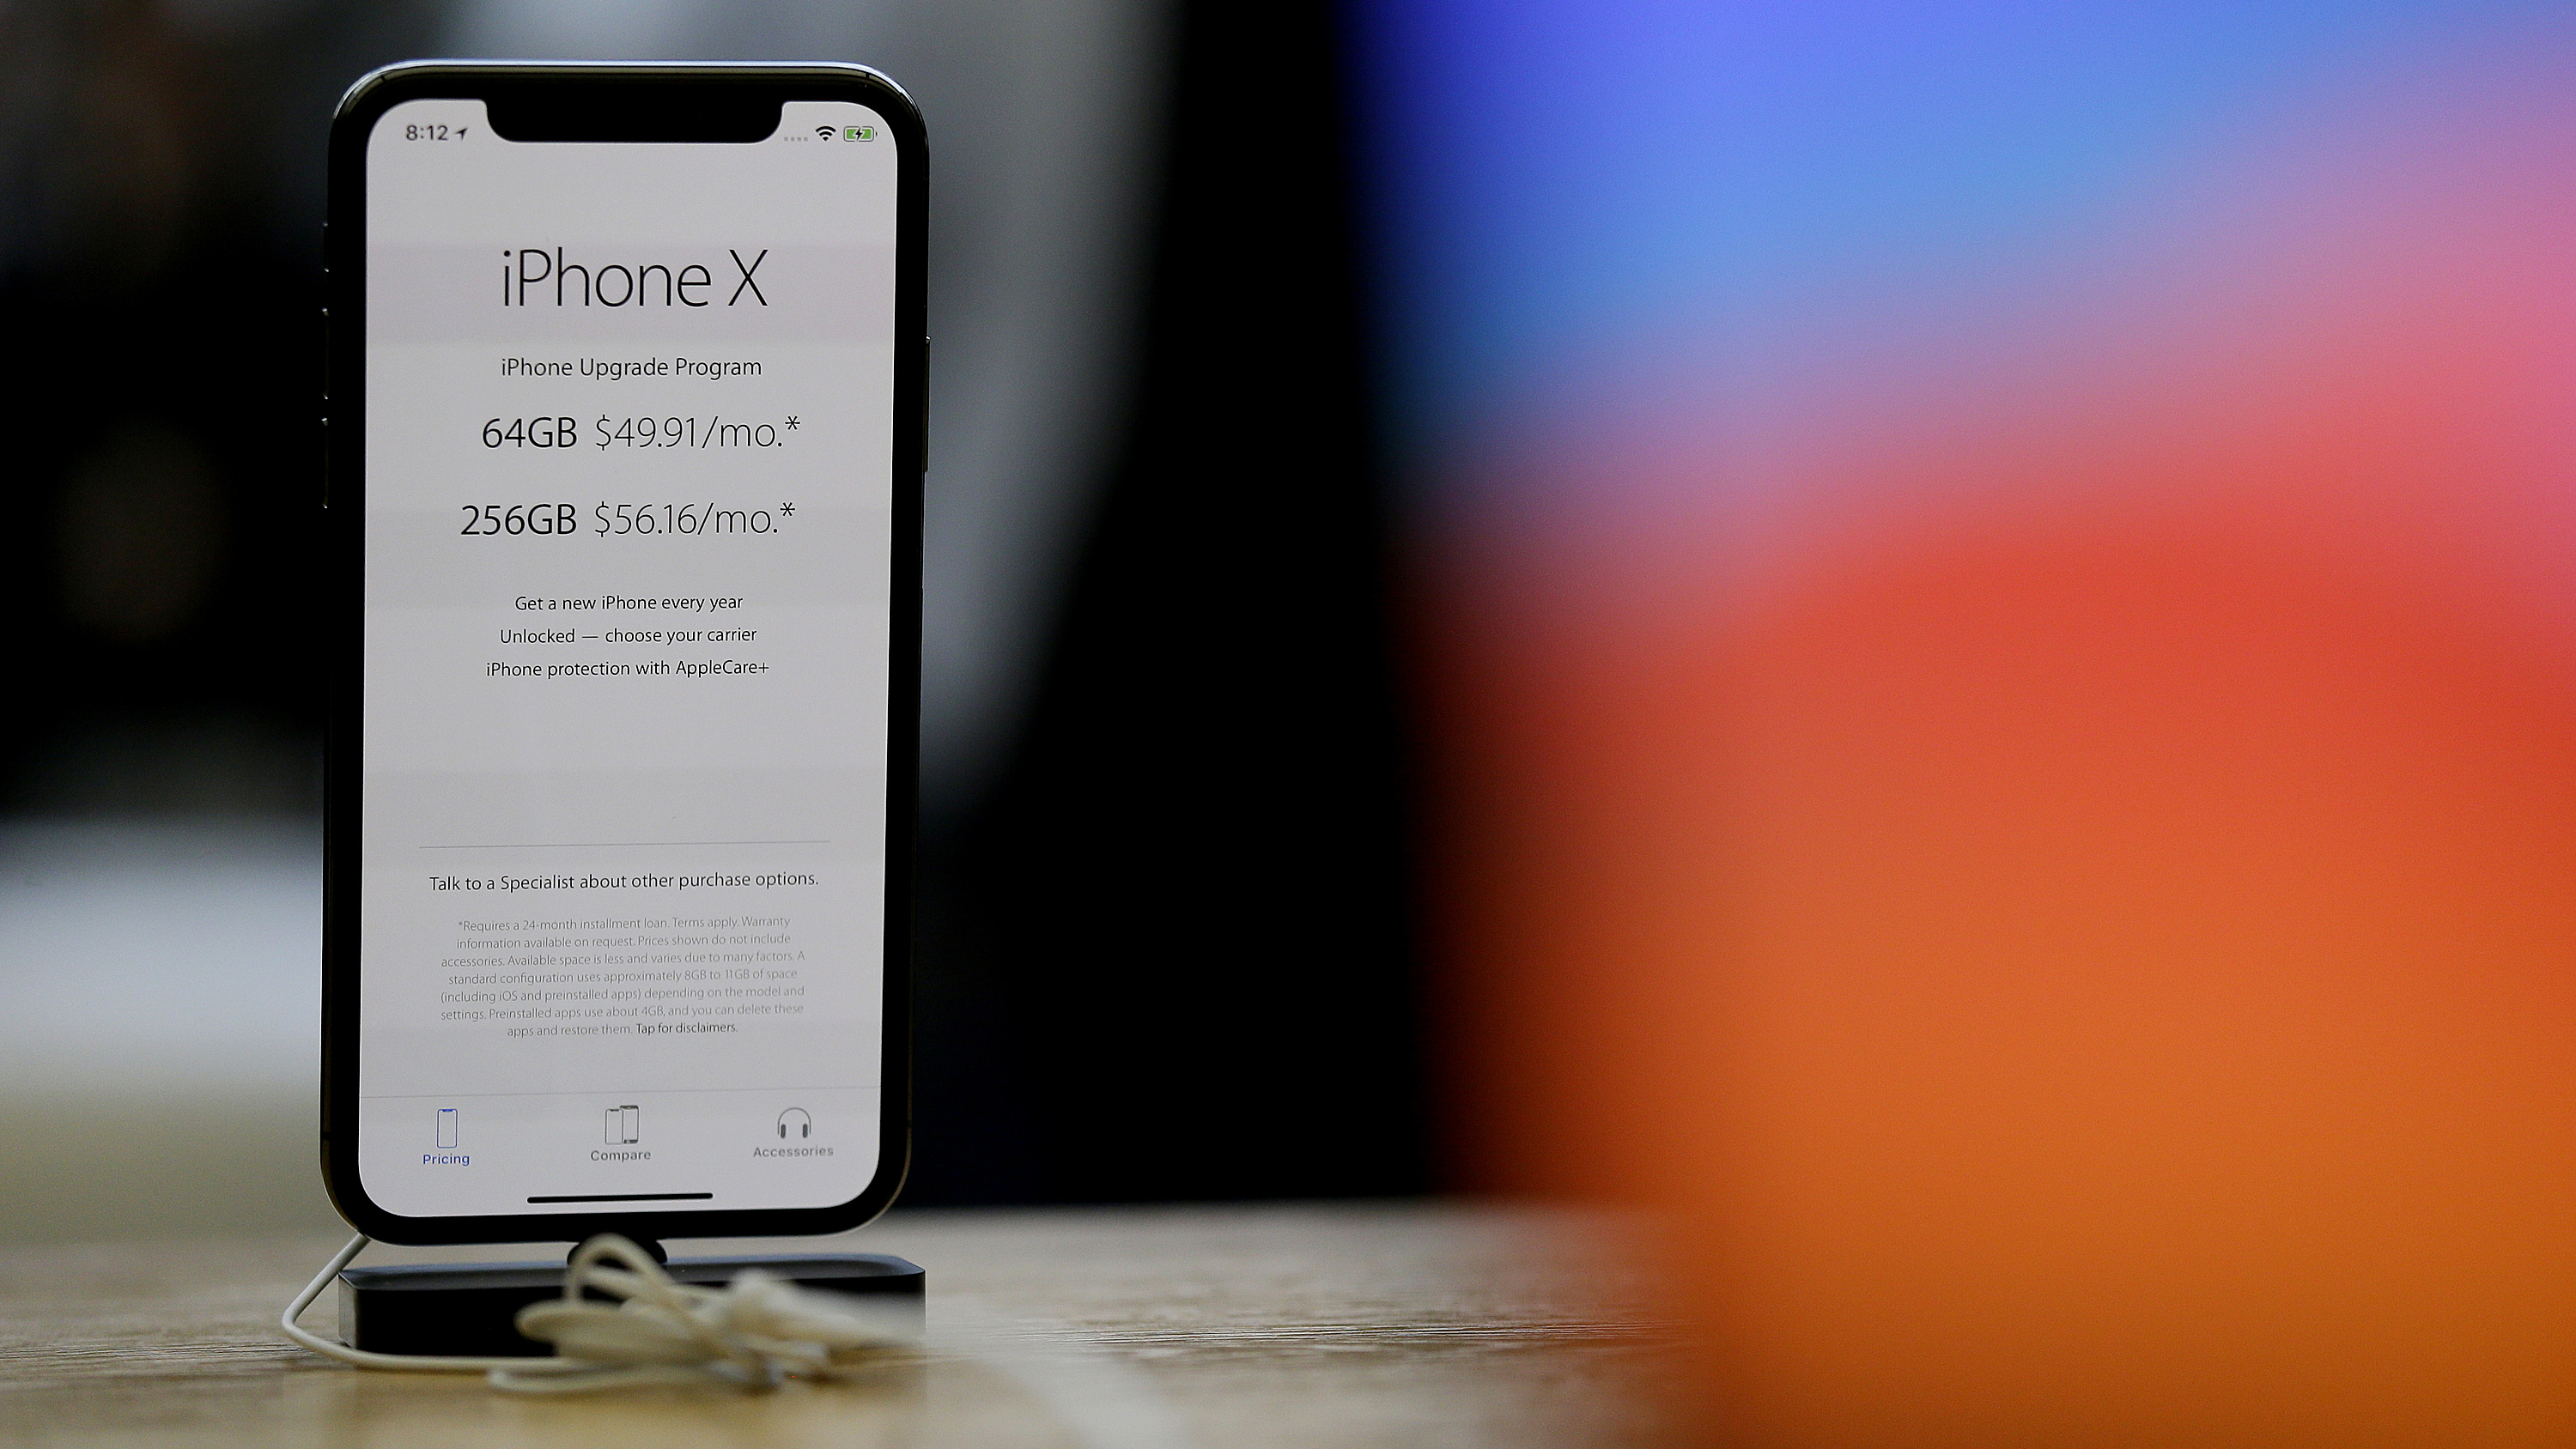 How to soft reset iphone x when frozen